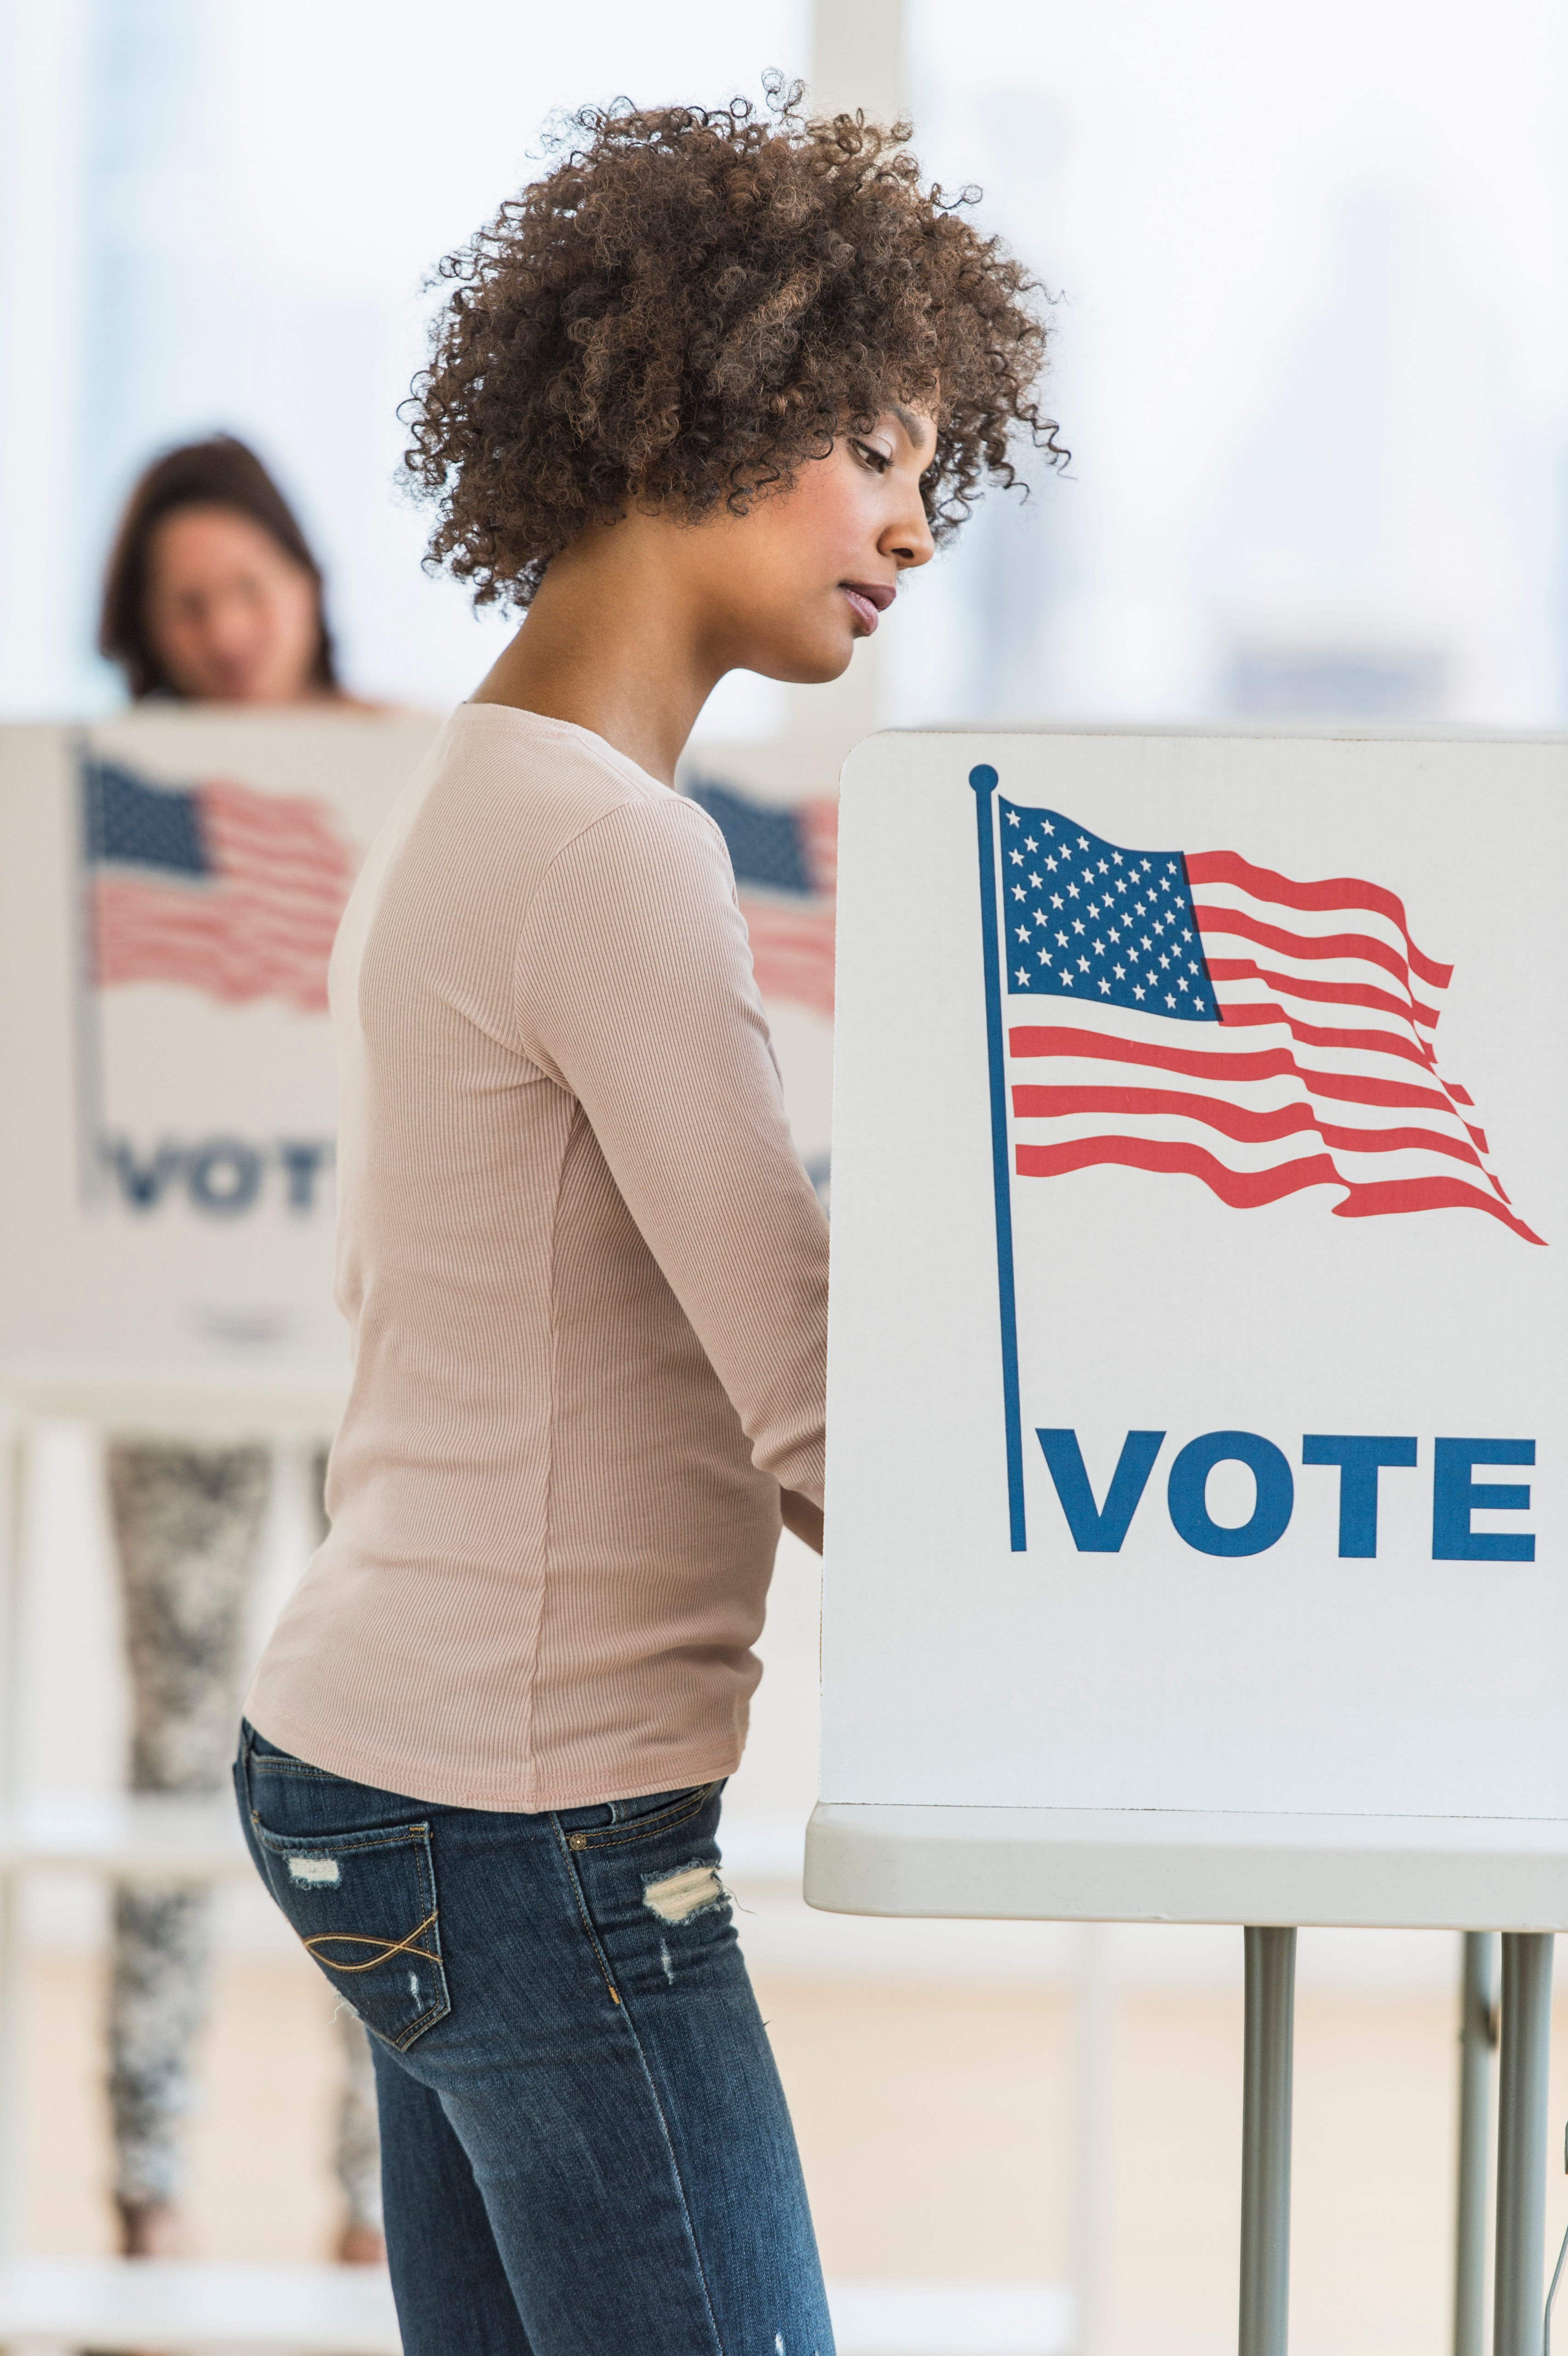 Here's How To Make Sure You're Not A Victim Of Voter Suppression, And What To Do If You Are